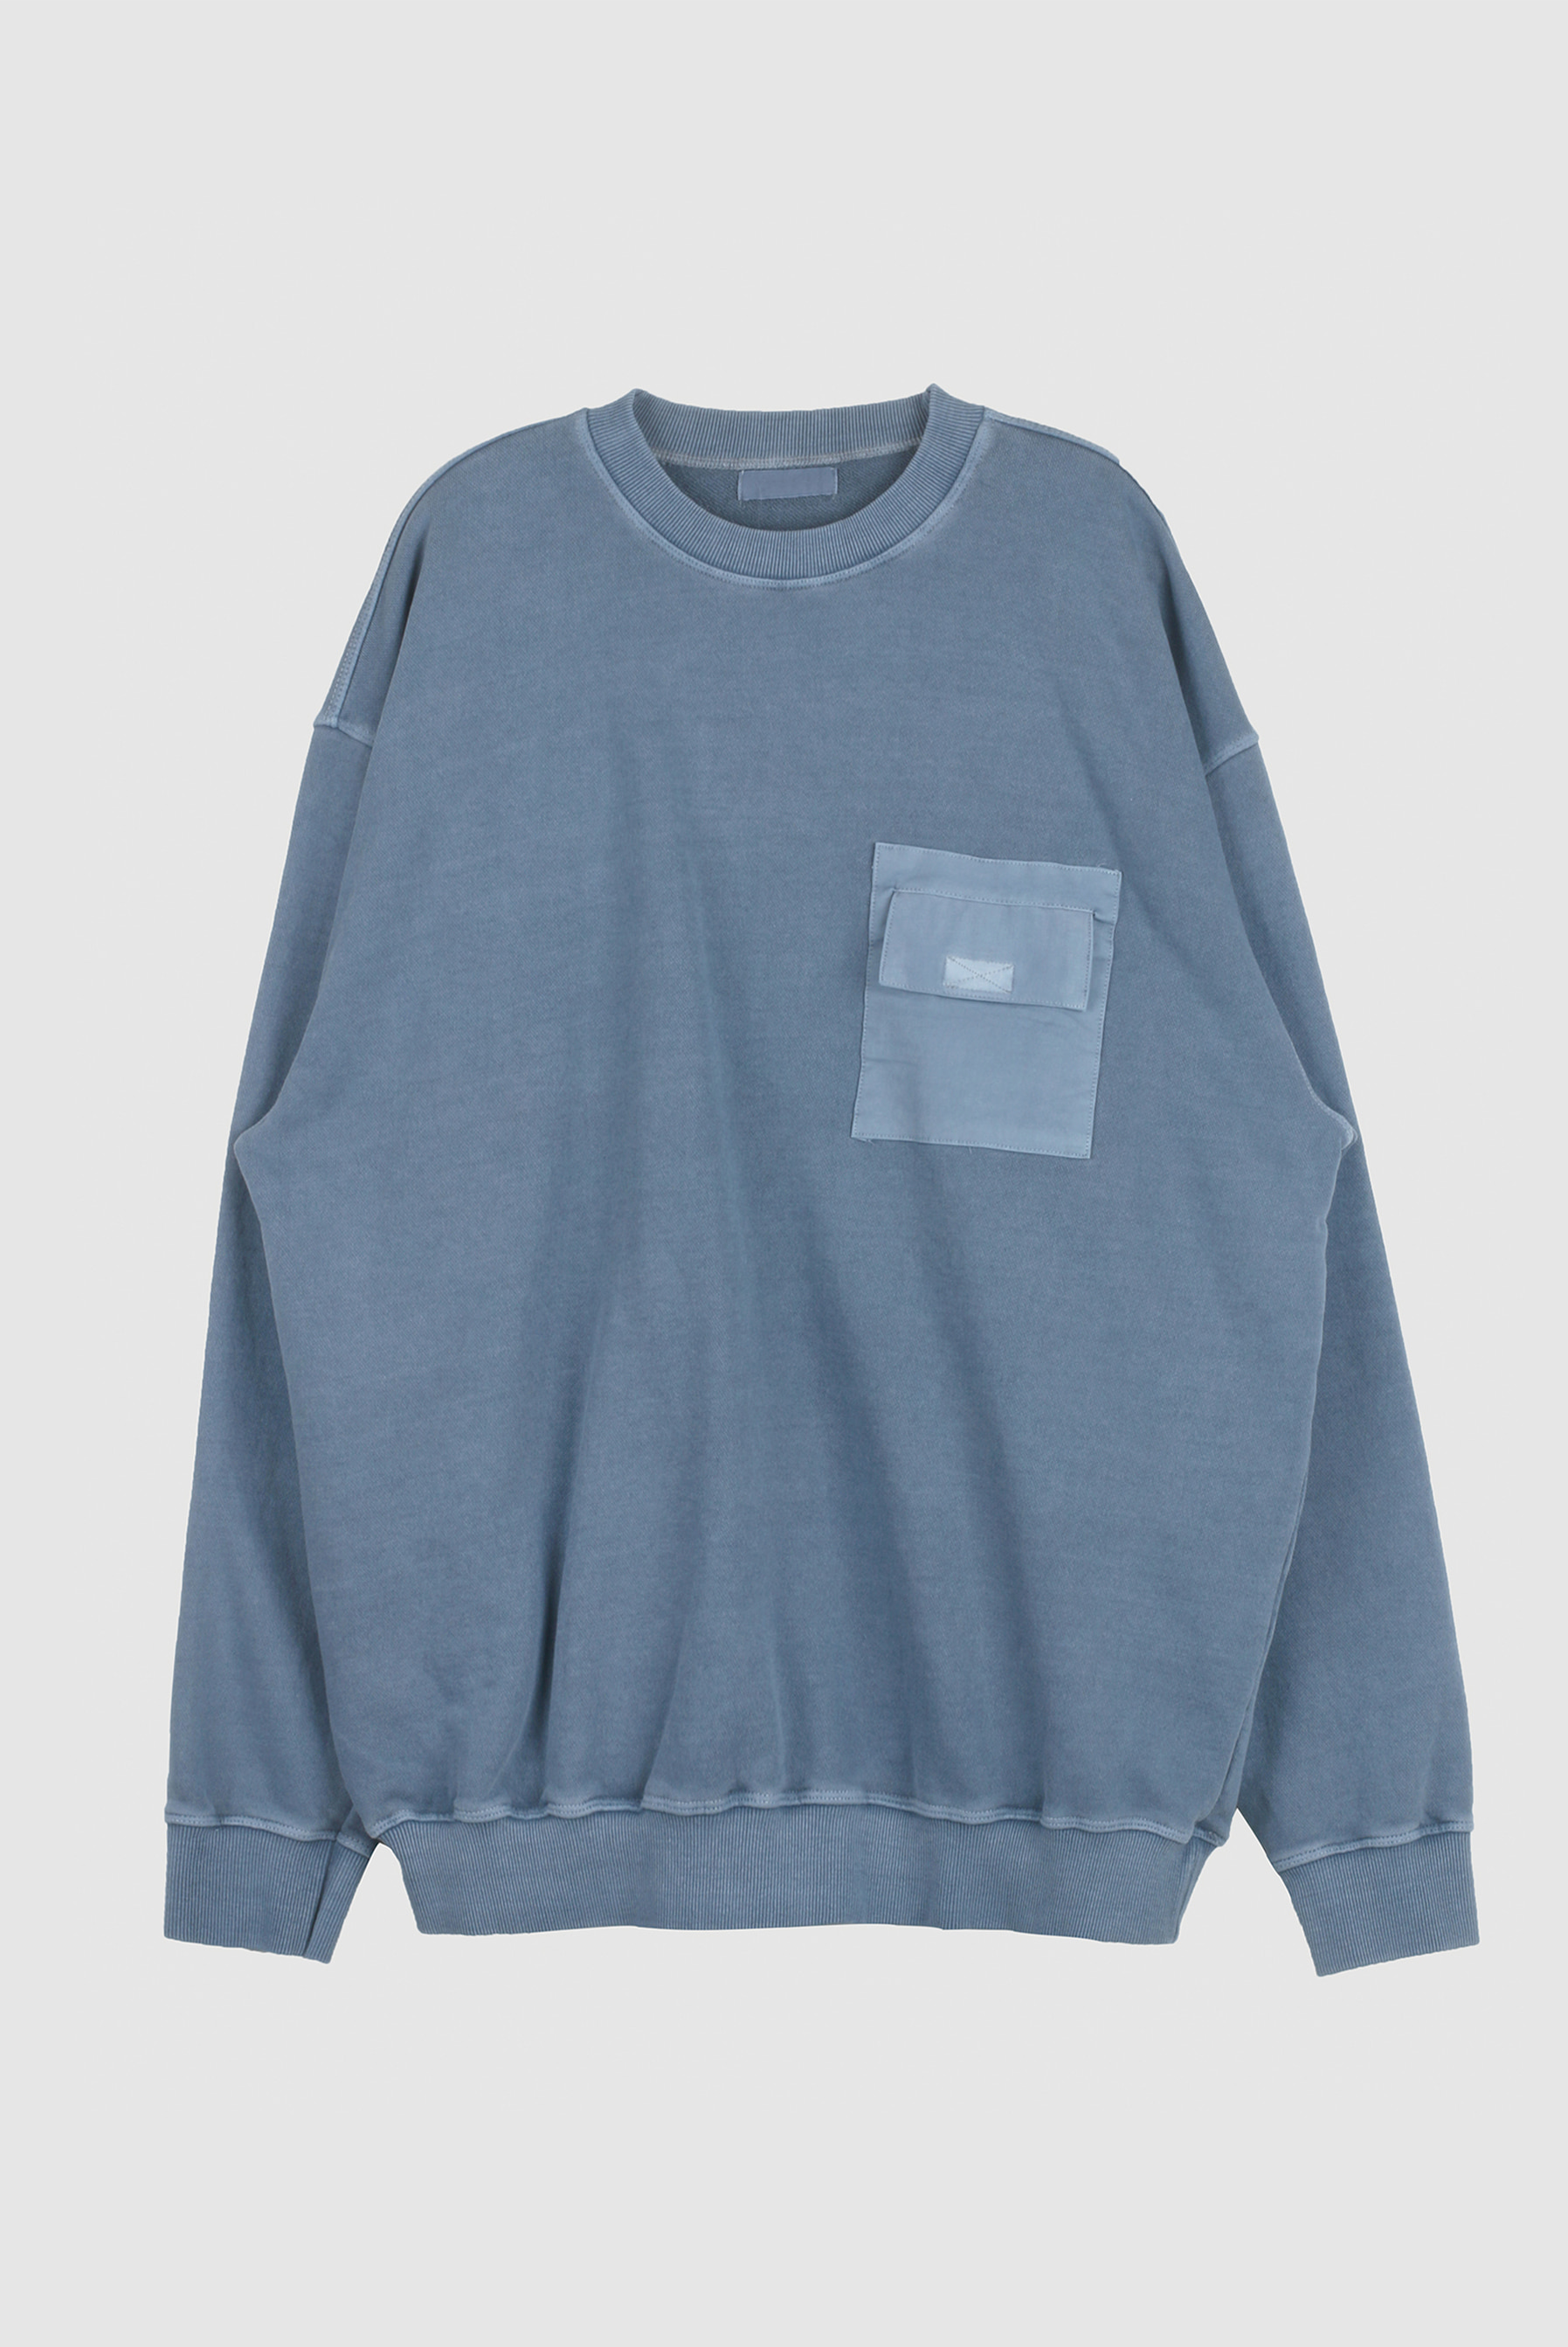 Pigment_Washing Poket Sweatshirts